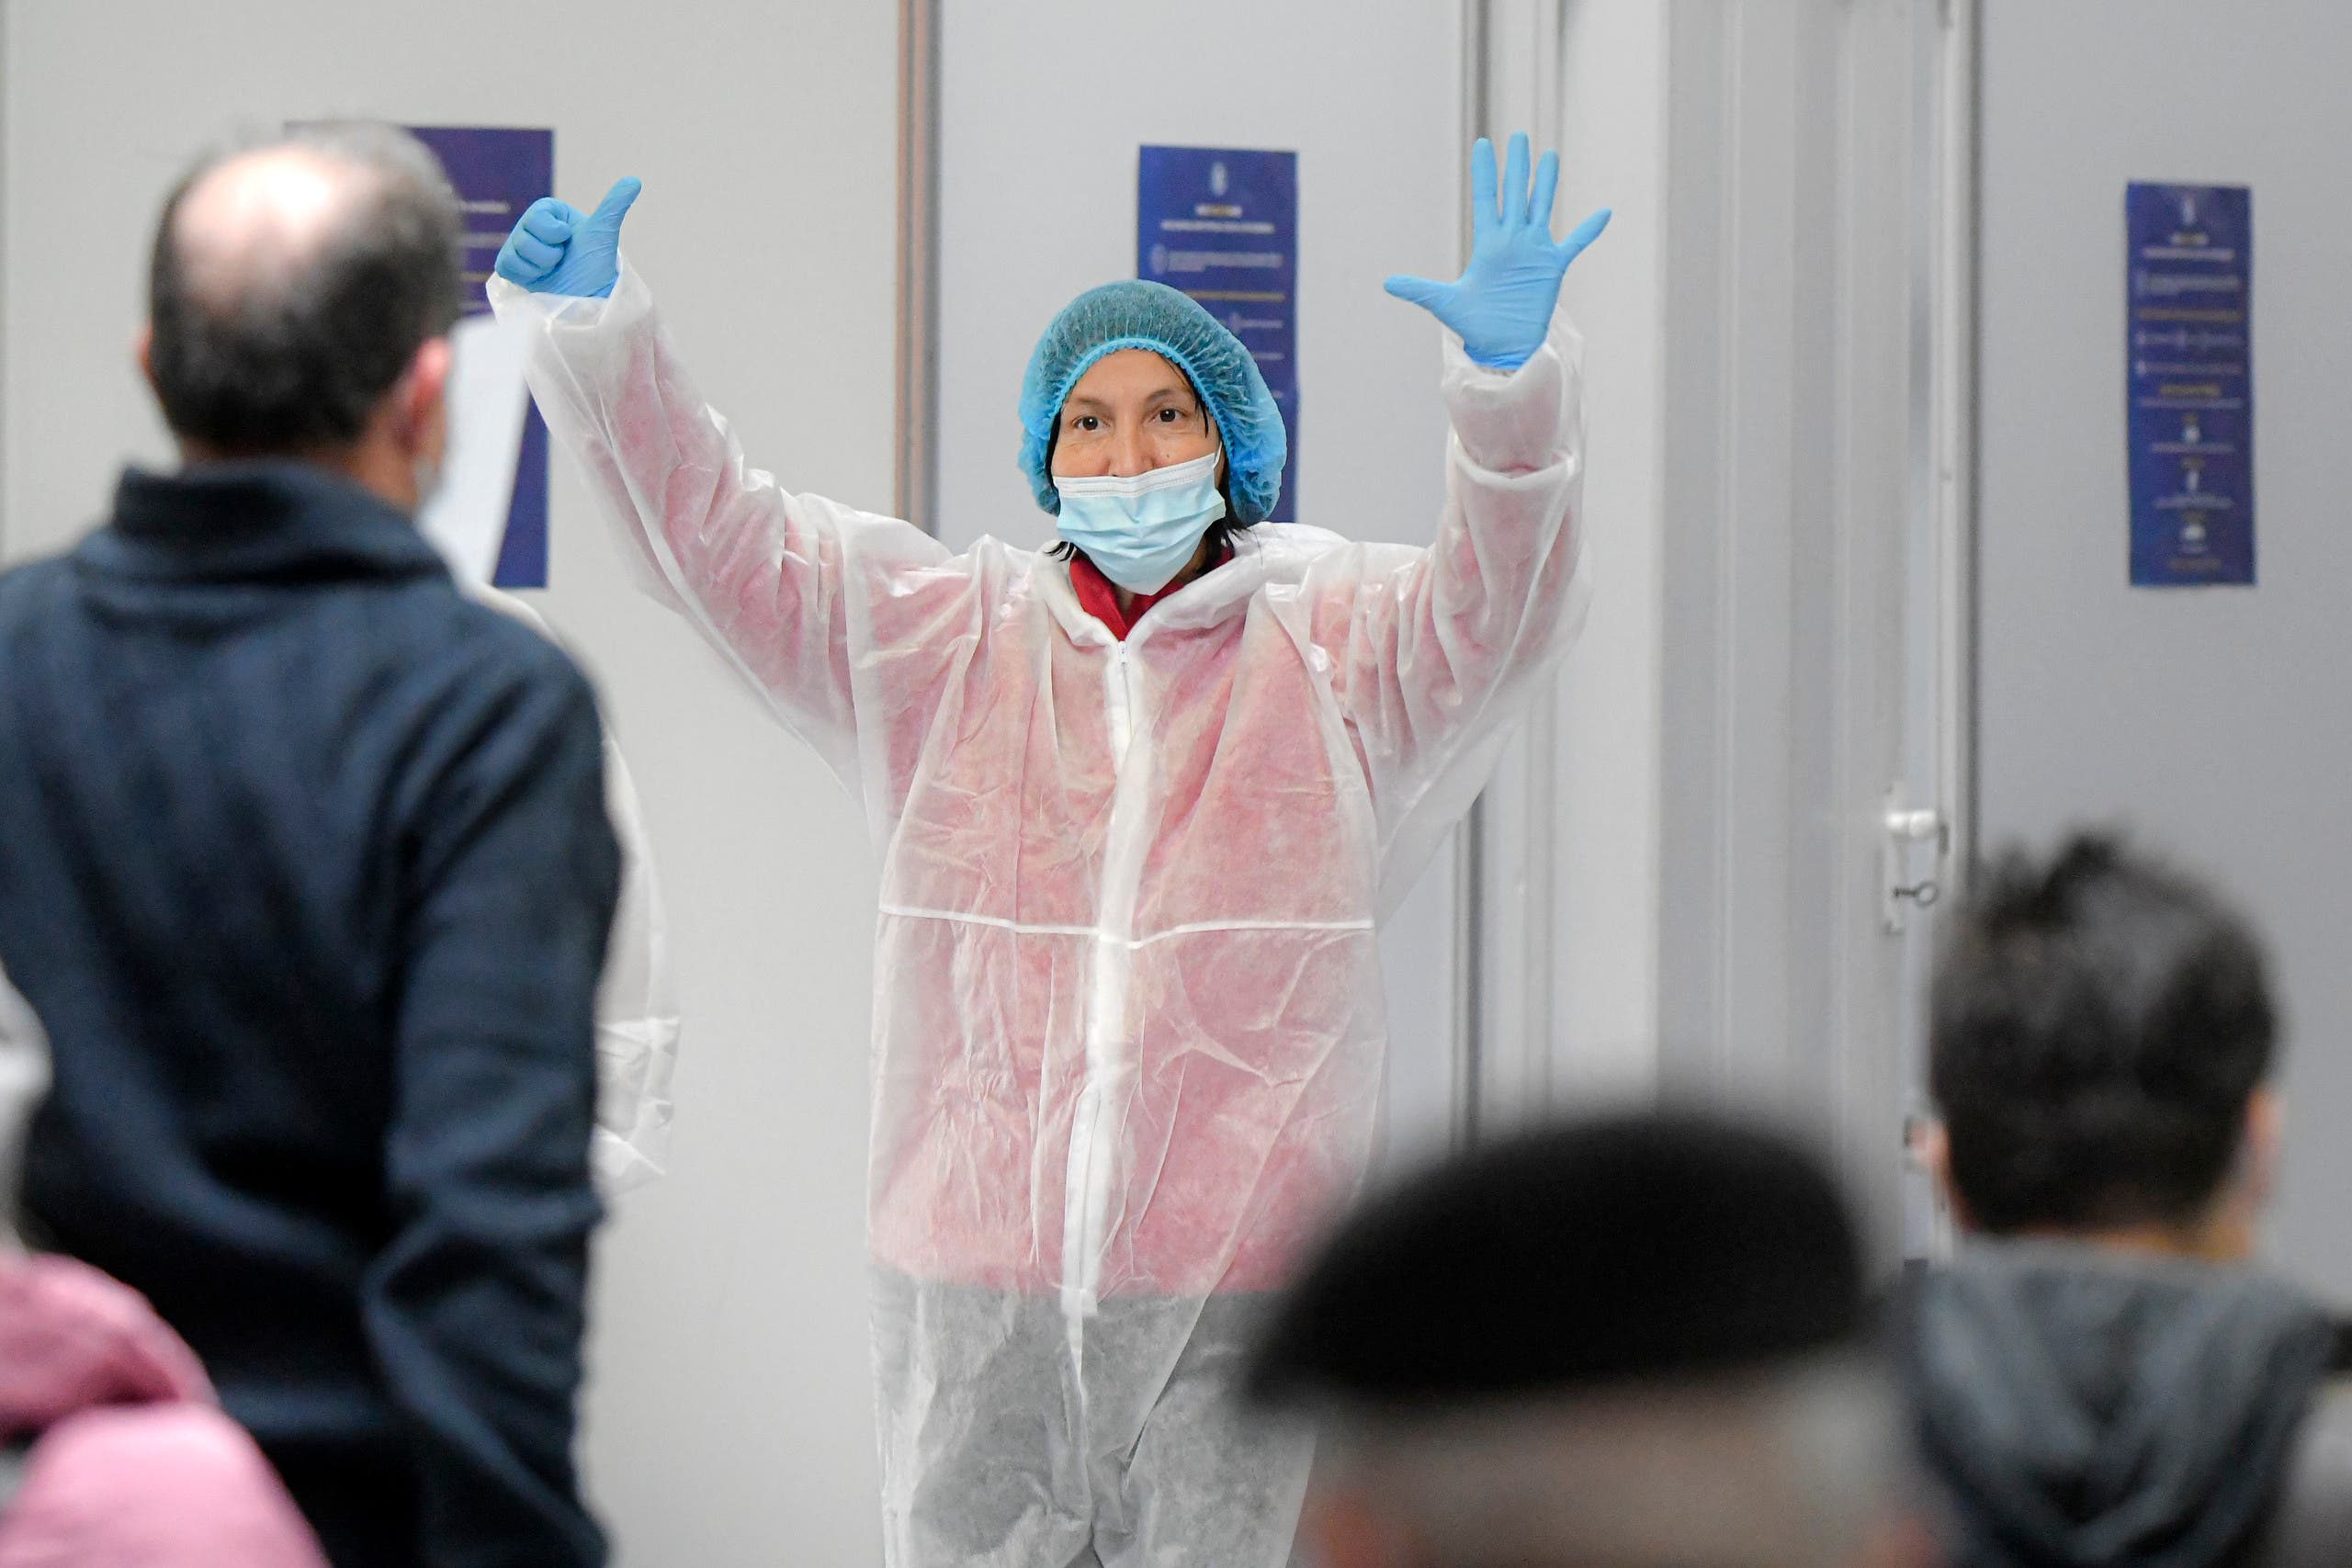 A member of the medical team gestures to indicate the number of the vaccination booth, at a Pfizer-BioNTech COVID-19 vaccination center in Bucharest, Romania, Wednesday, Jan. 20, 2021. (AP)